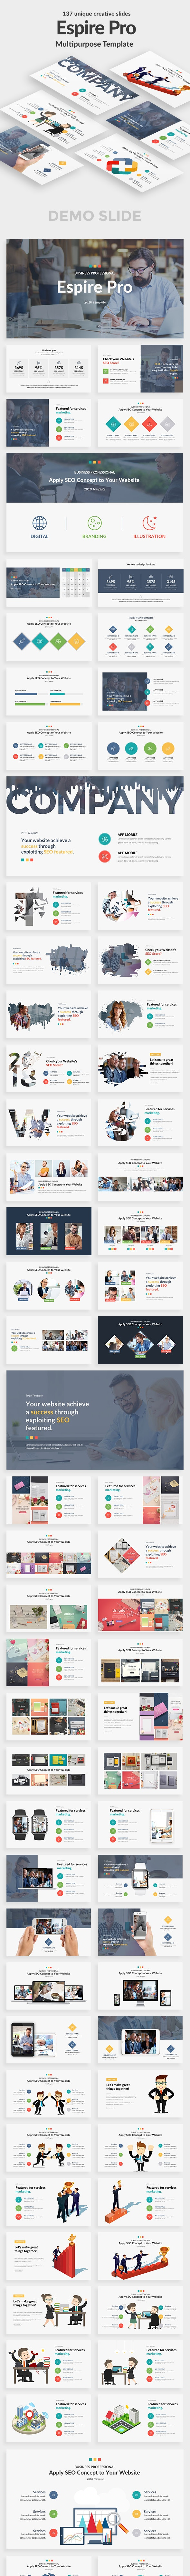 Espire Multipurpose Powerpoint Template - Business PowerPoint Templates